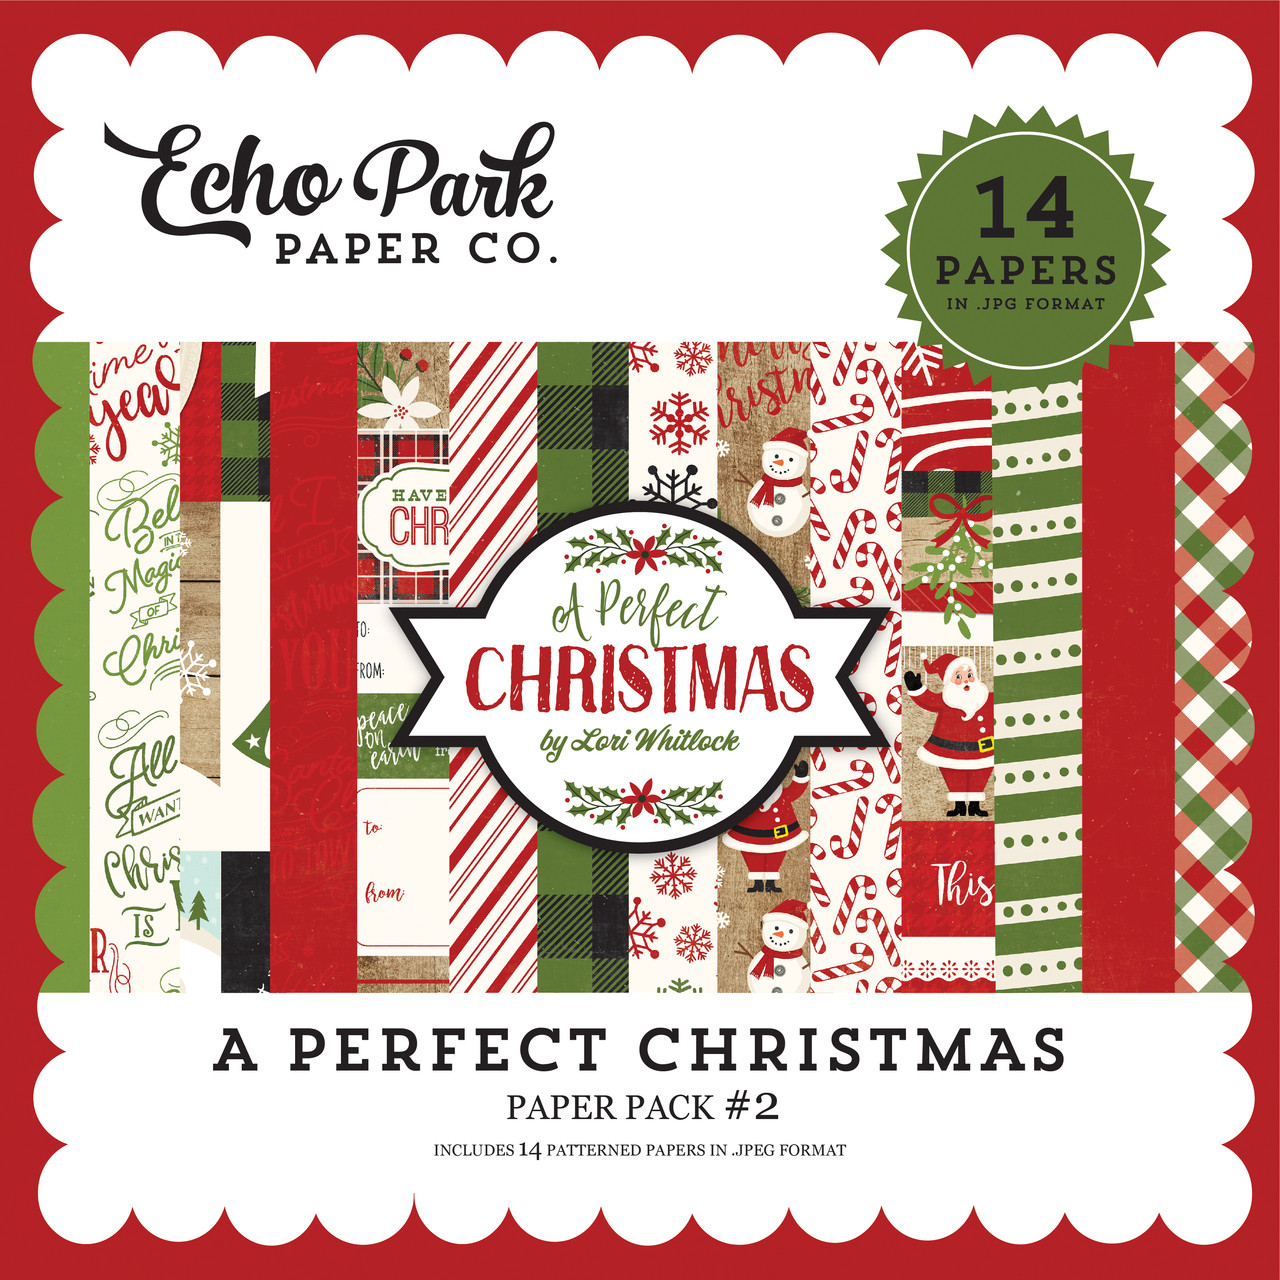 A Perfect Christmas Paper Pack #2